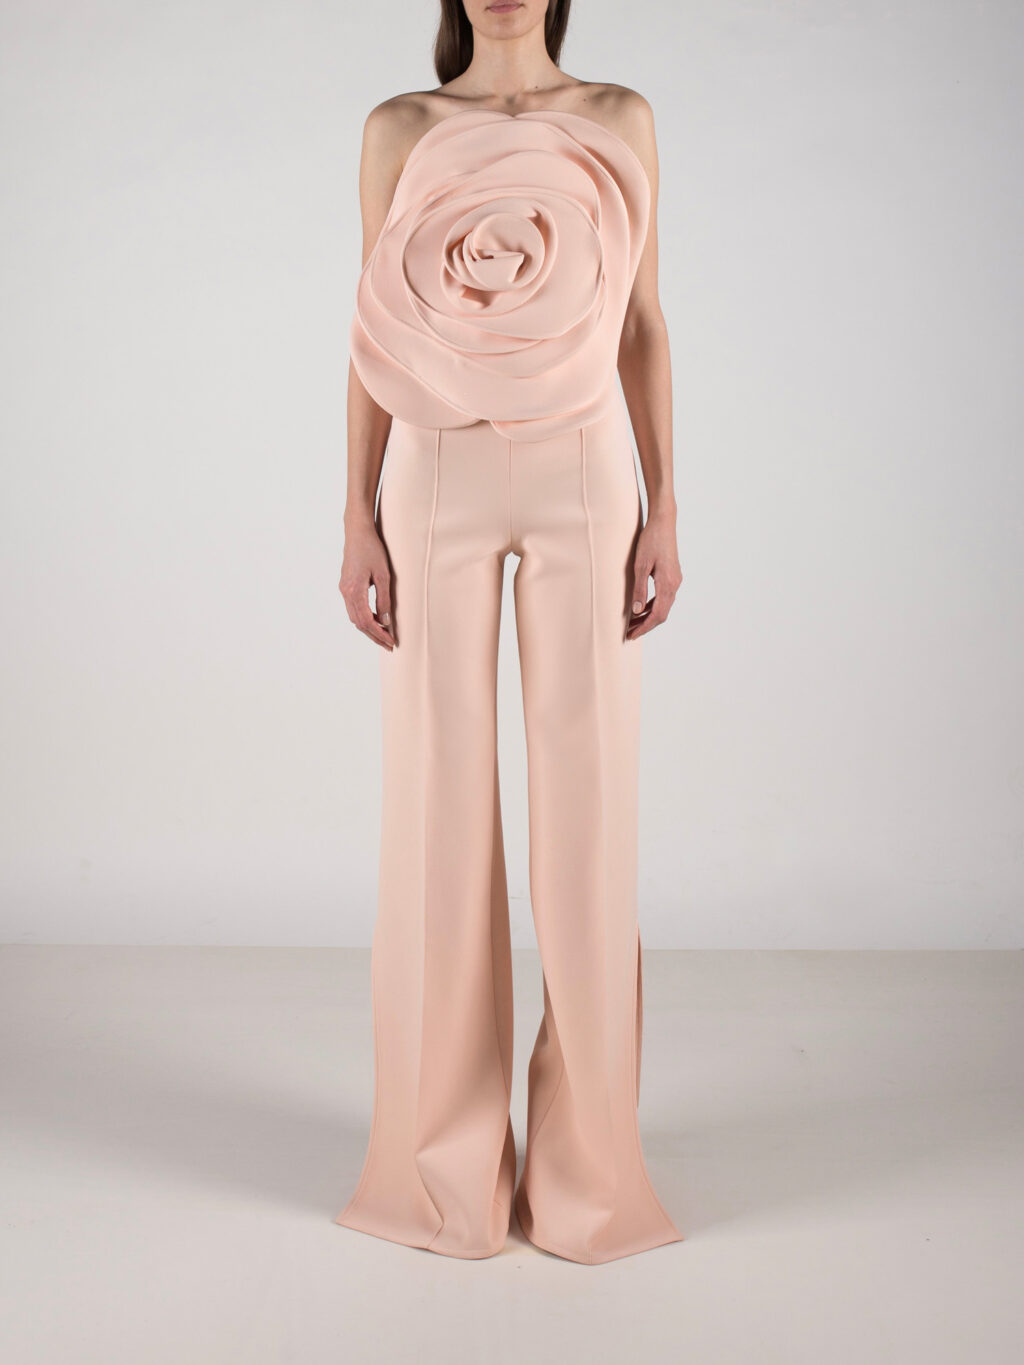 Top With Flower Detail In Peach